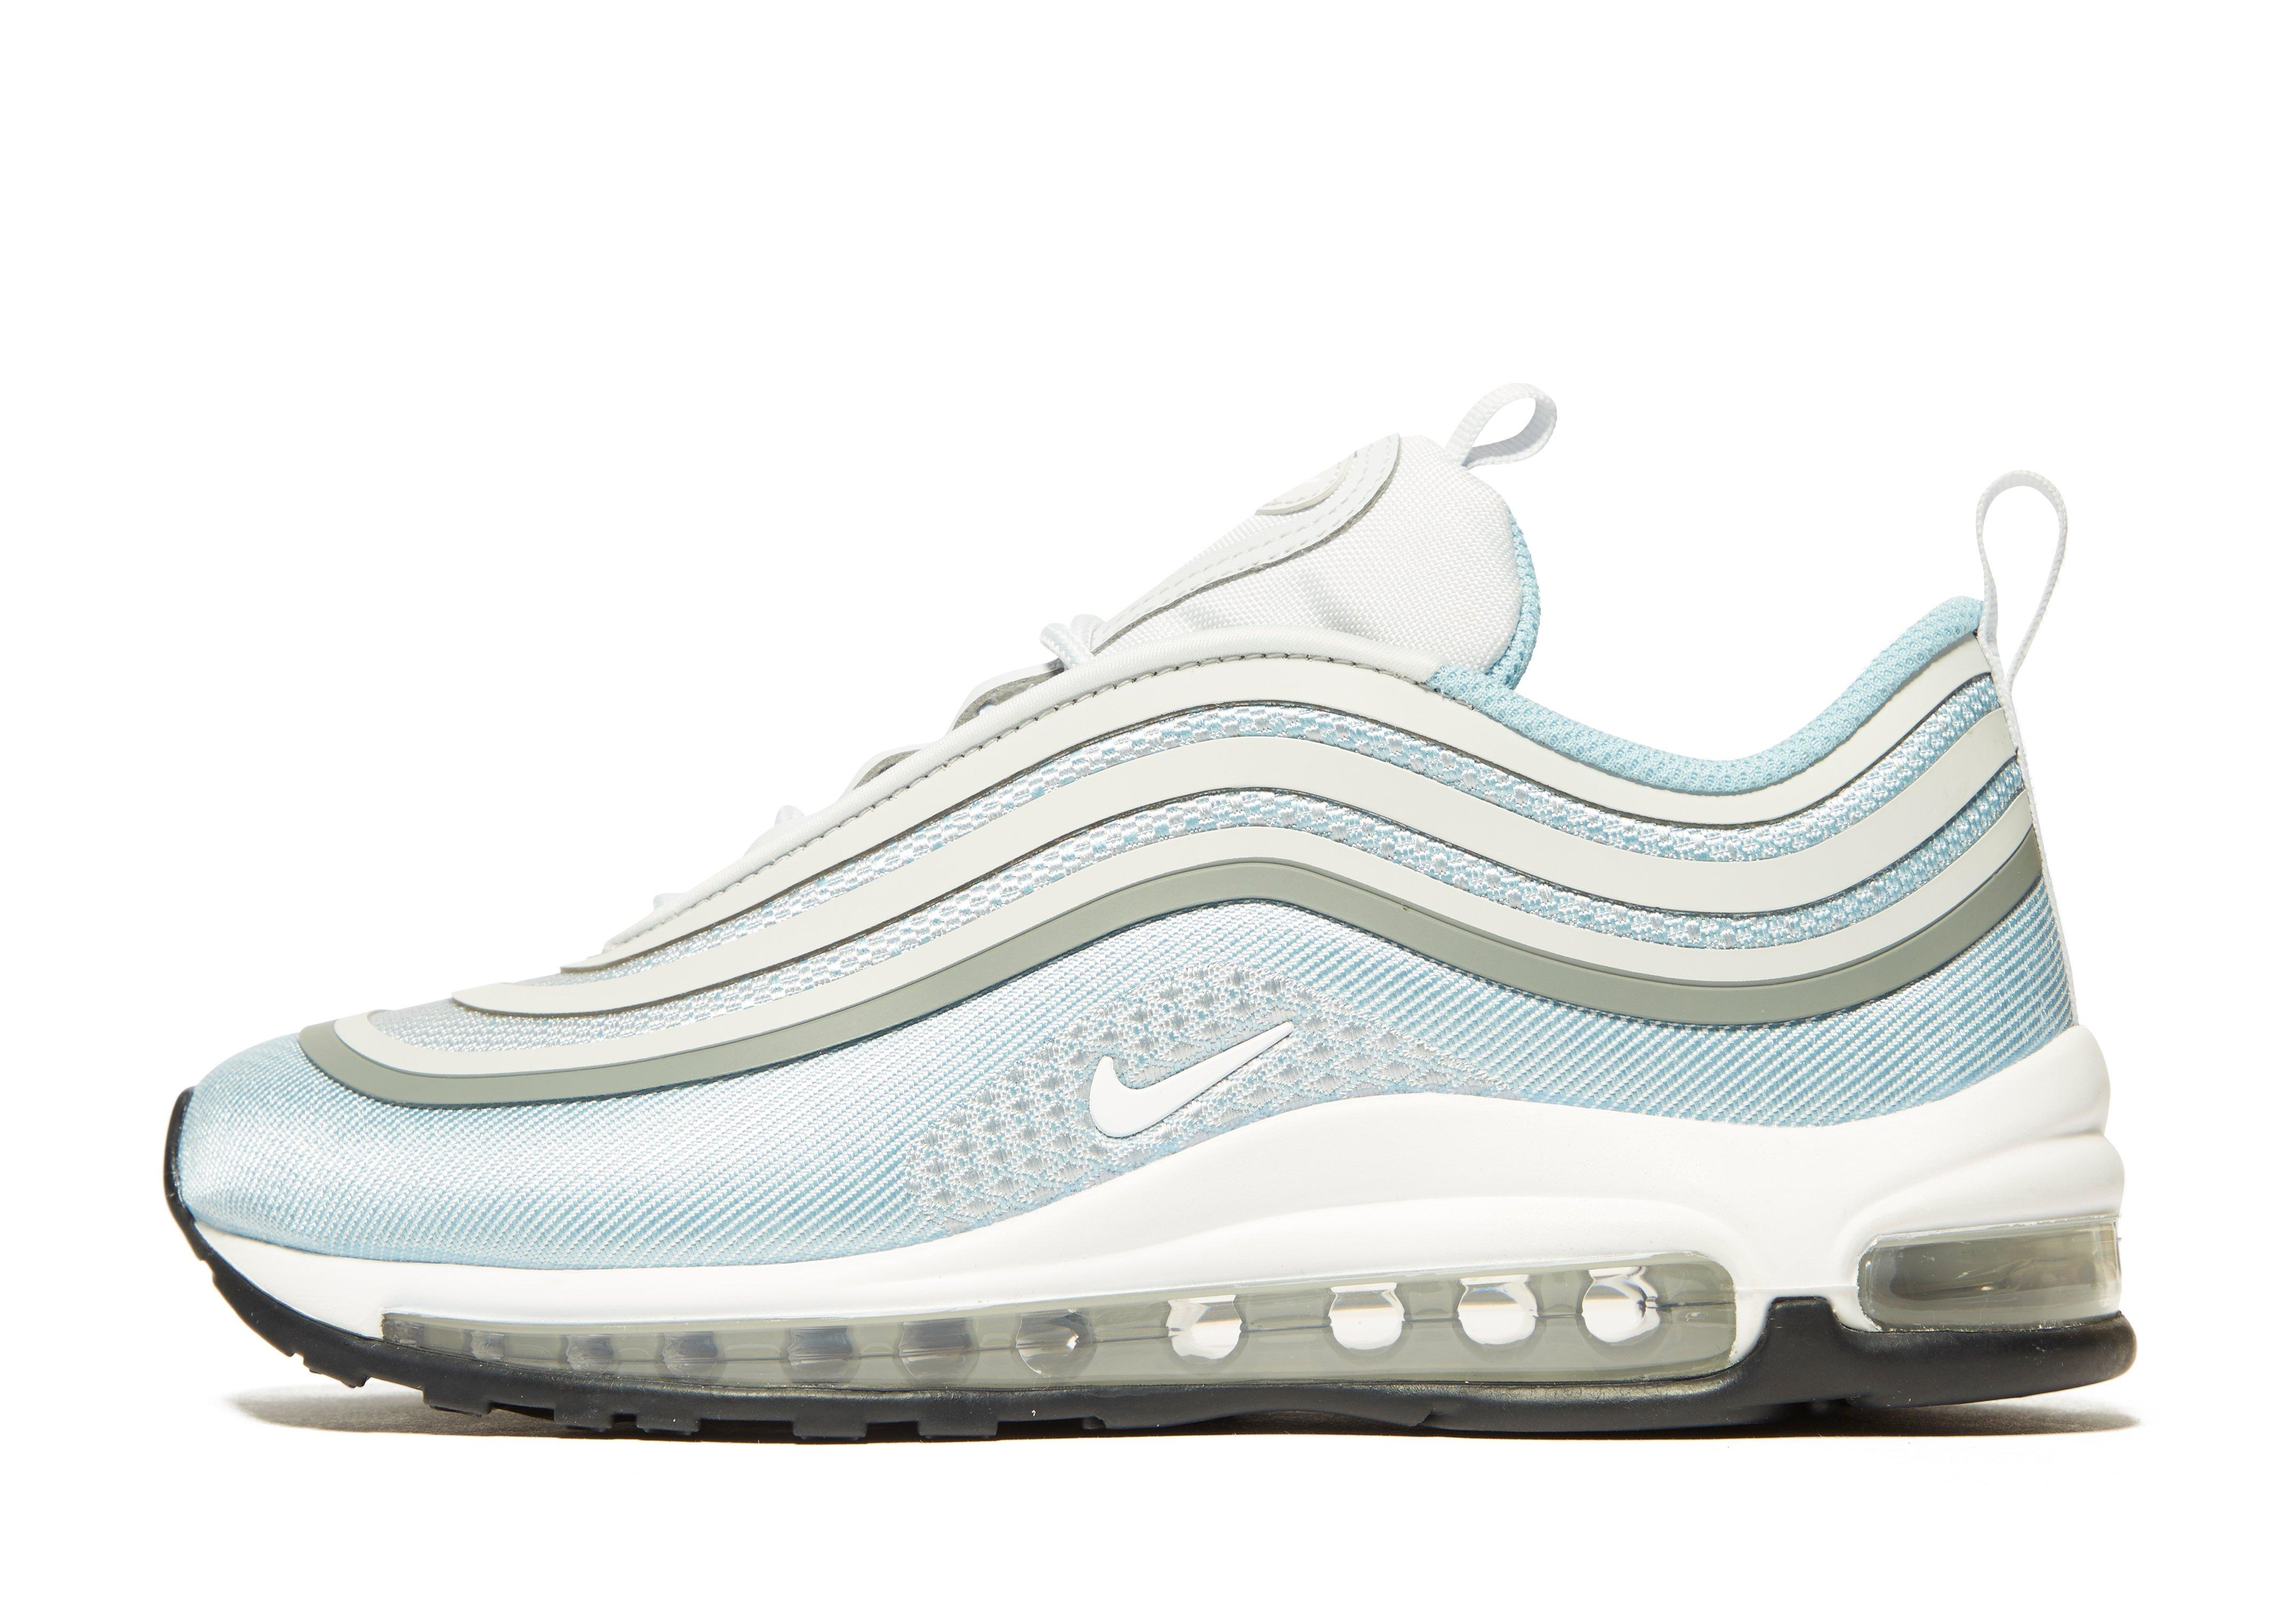 Nike Air Max Or 97 Thunderbird